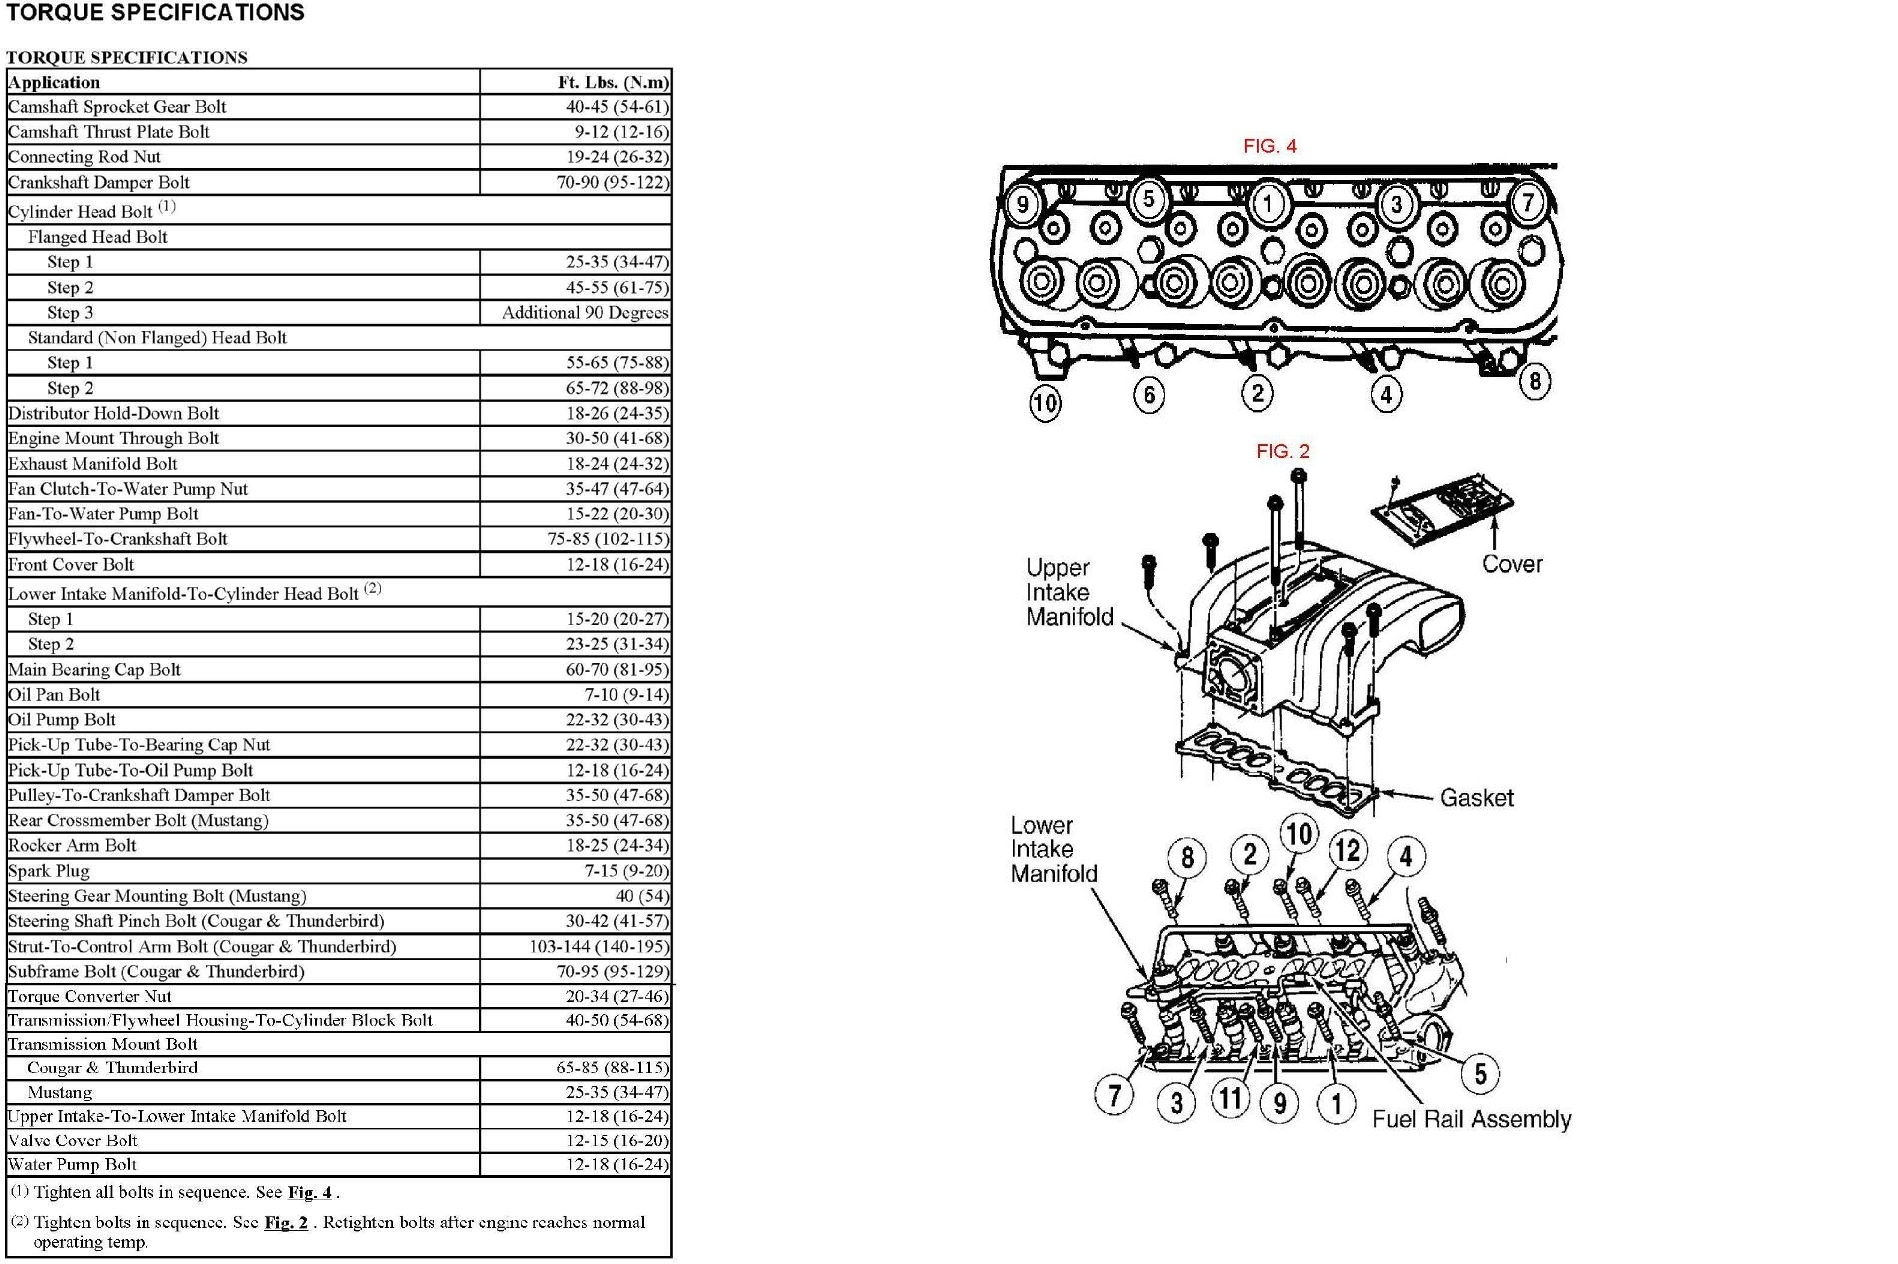 Chevy 350 Torque Specs Diagrams